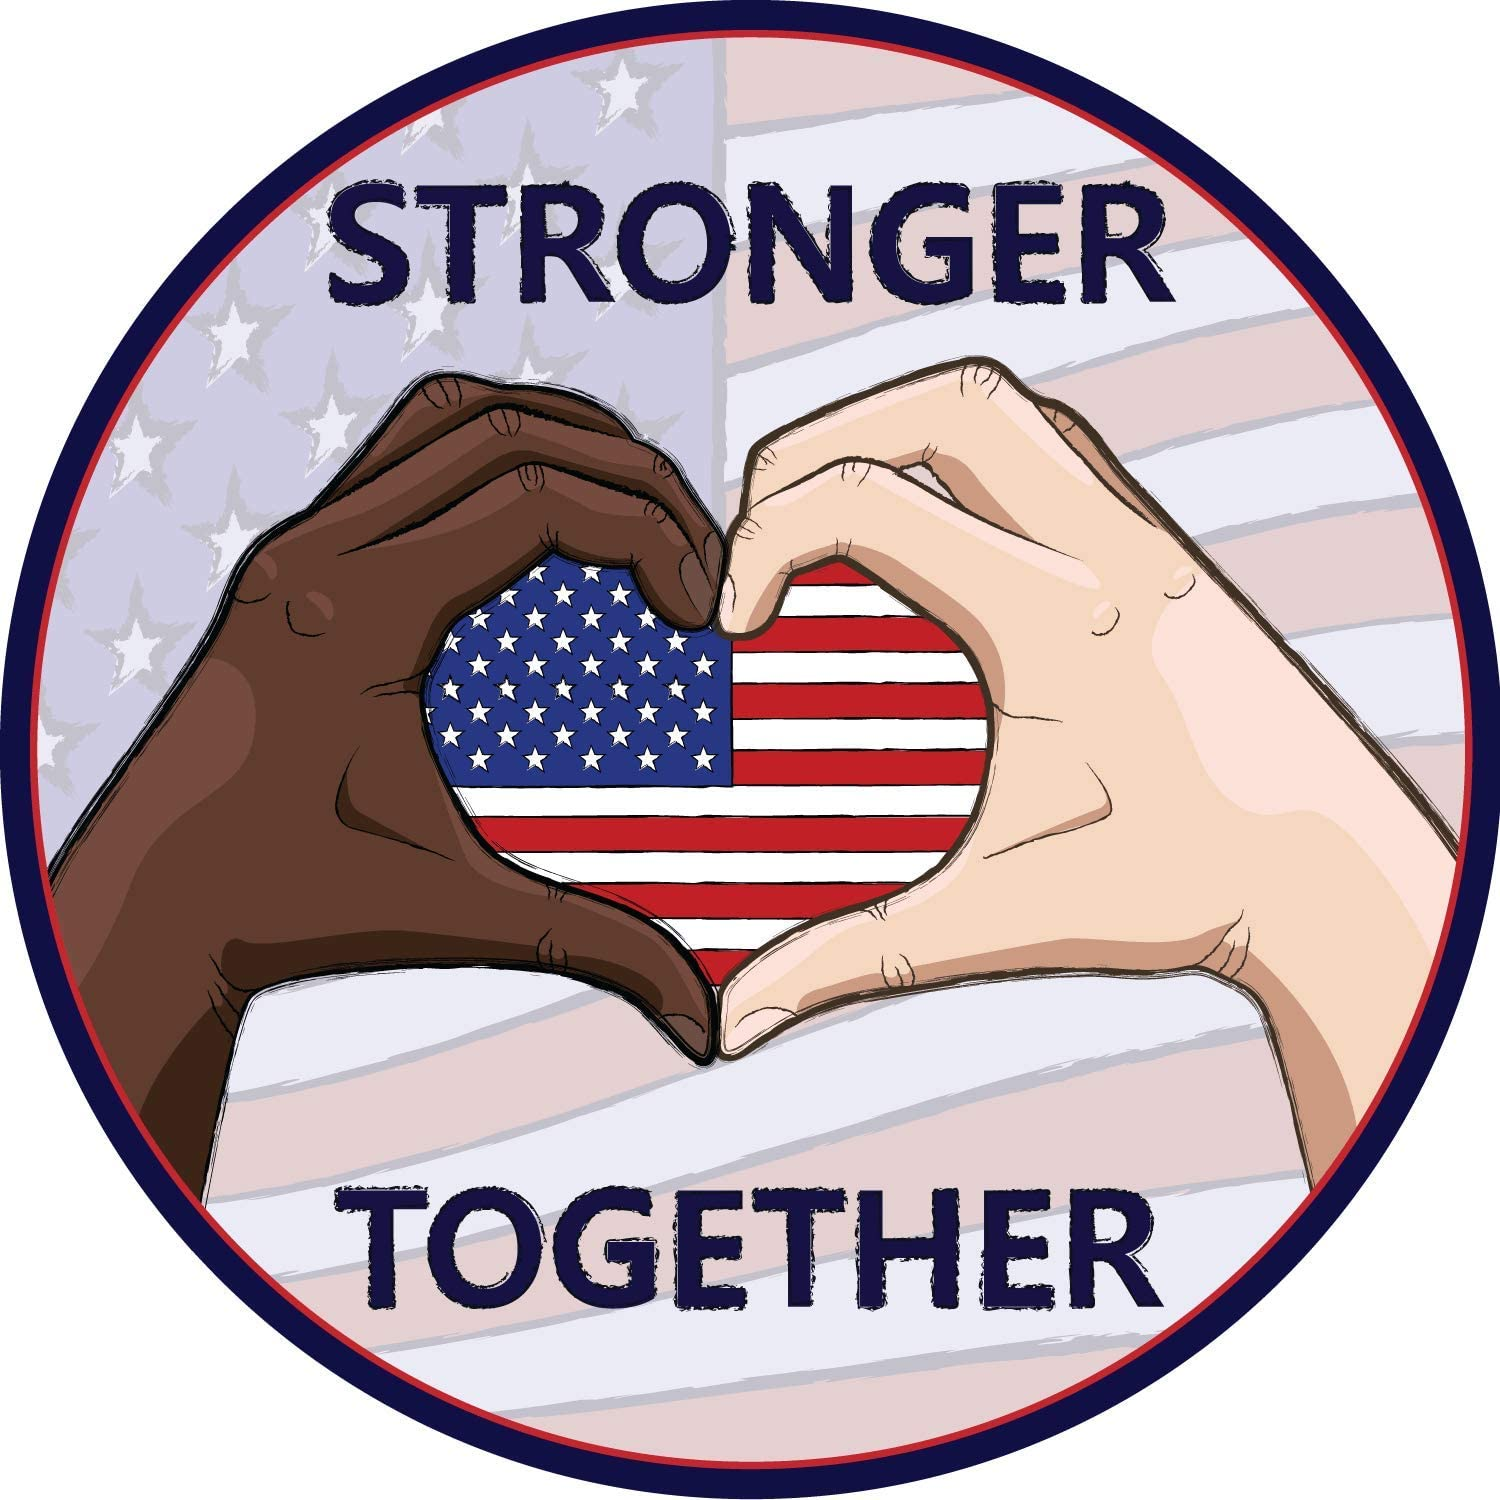 Anti Racism Magnet, Stronger Together Racial Equality Magnetic Decal for Fridge or Car 5 1/2 Inch